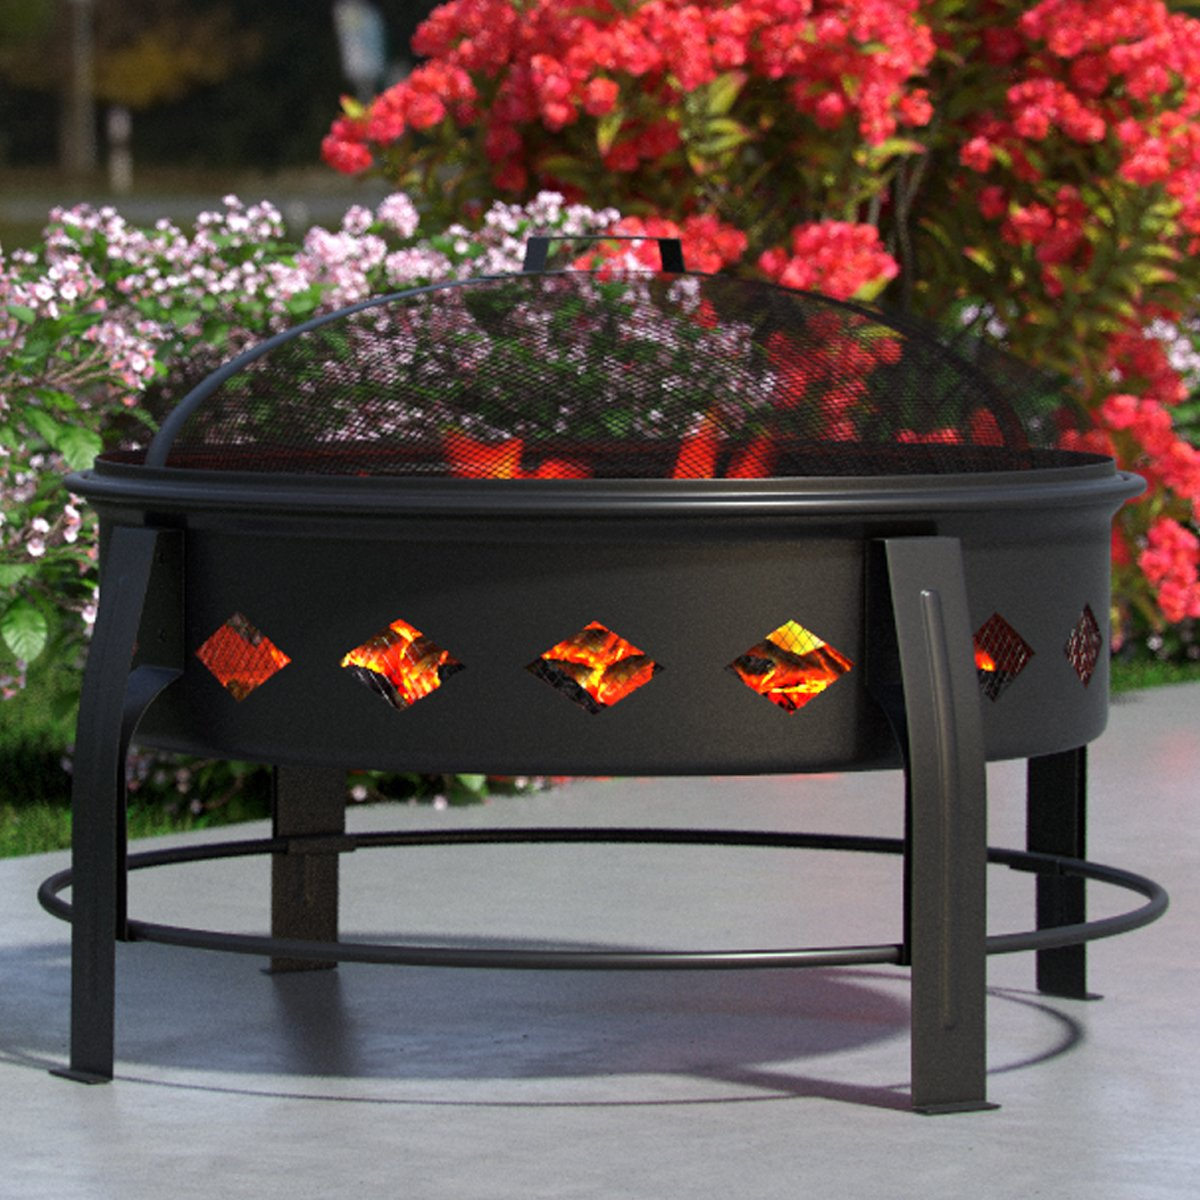 "Regal Flame Cosmic Flame 27"" Portable Outdoor Fireplace Fire Pit For Backyard Patio Fire Bowl, Includes Safety Mesh Cover, Poker Stick, Great for Camping, Outdoor Heating, Bonfire, Picnic by Regal Flame (Image #1)"